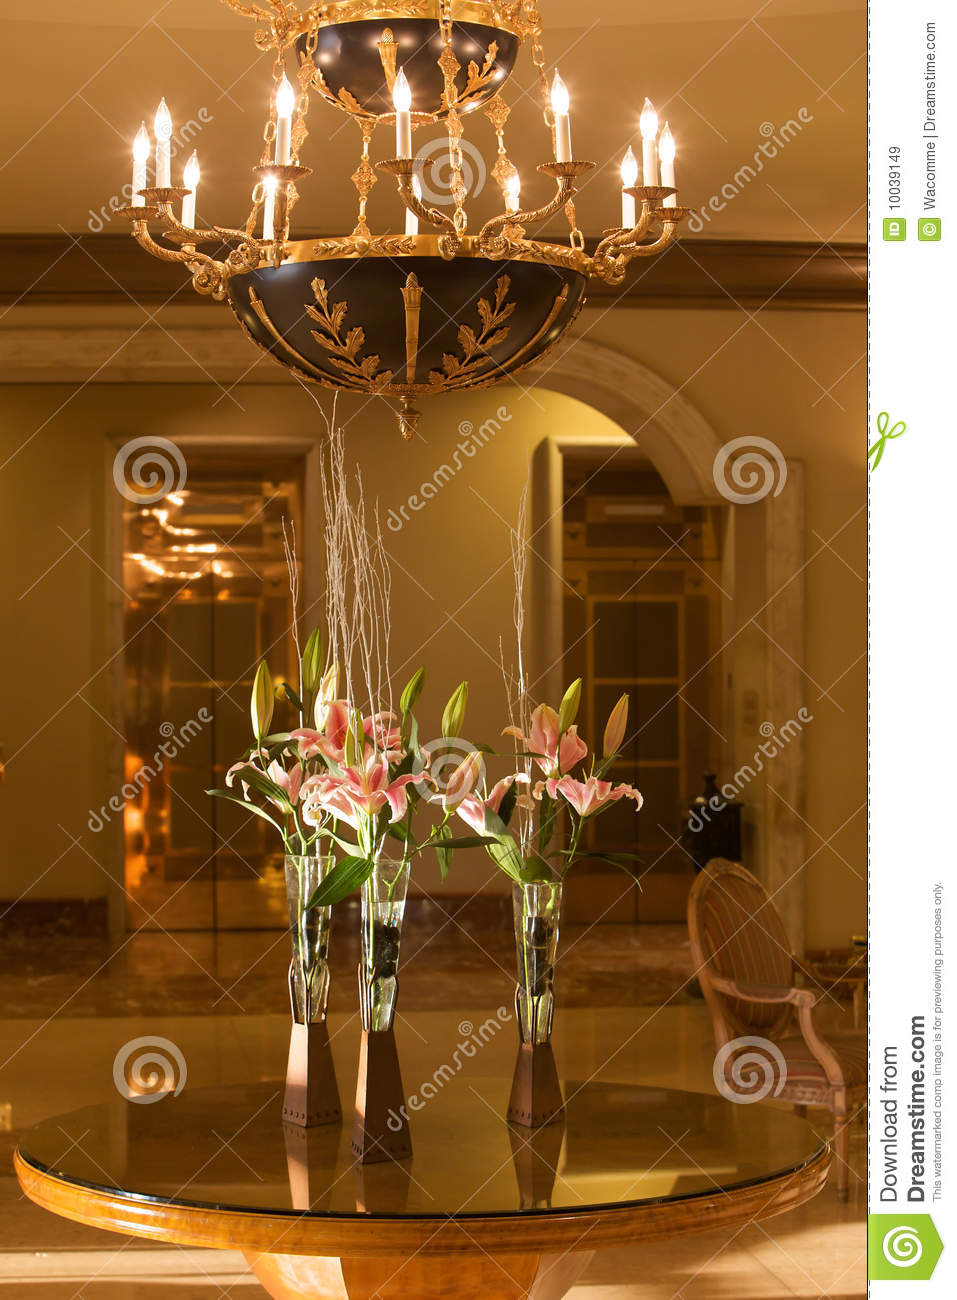 Hotel Foyer Flower Arrangements : Hotel lobby with chandelier and flowers stock image of